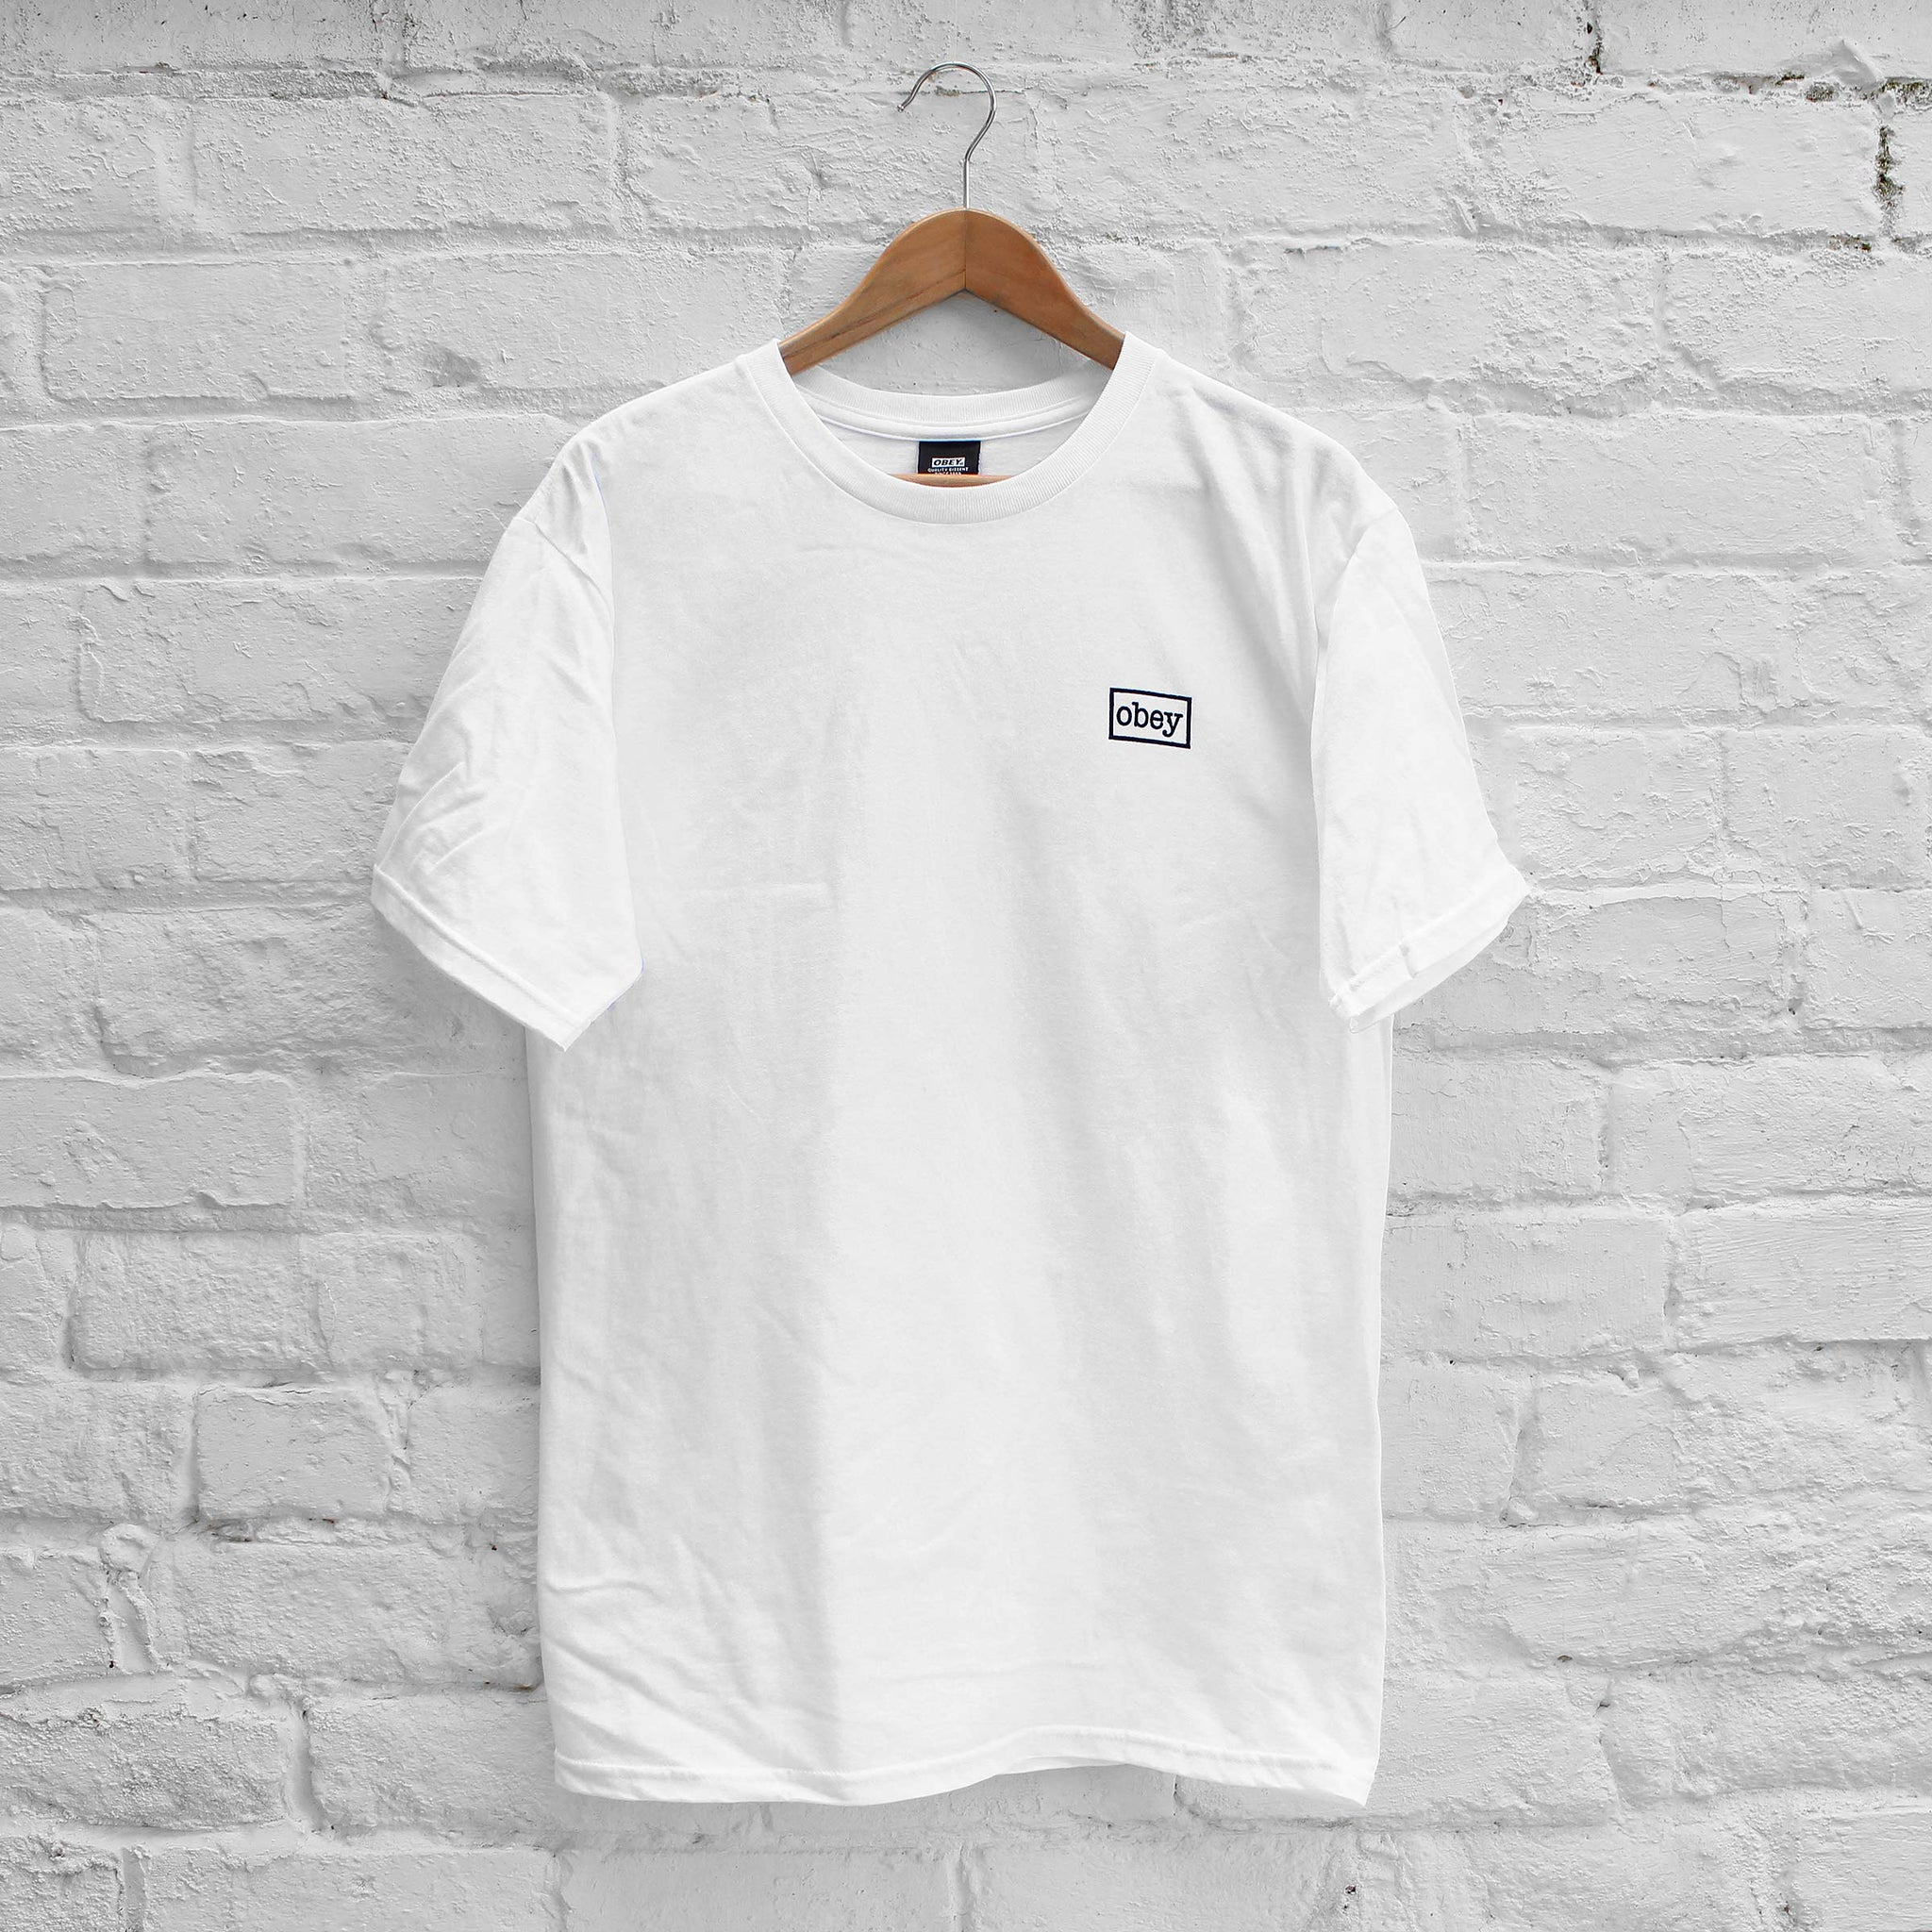 Obey Shockbound T-Shirt